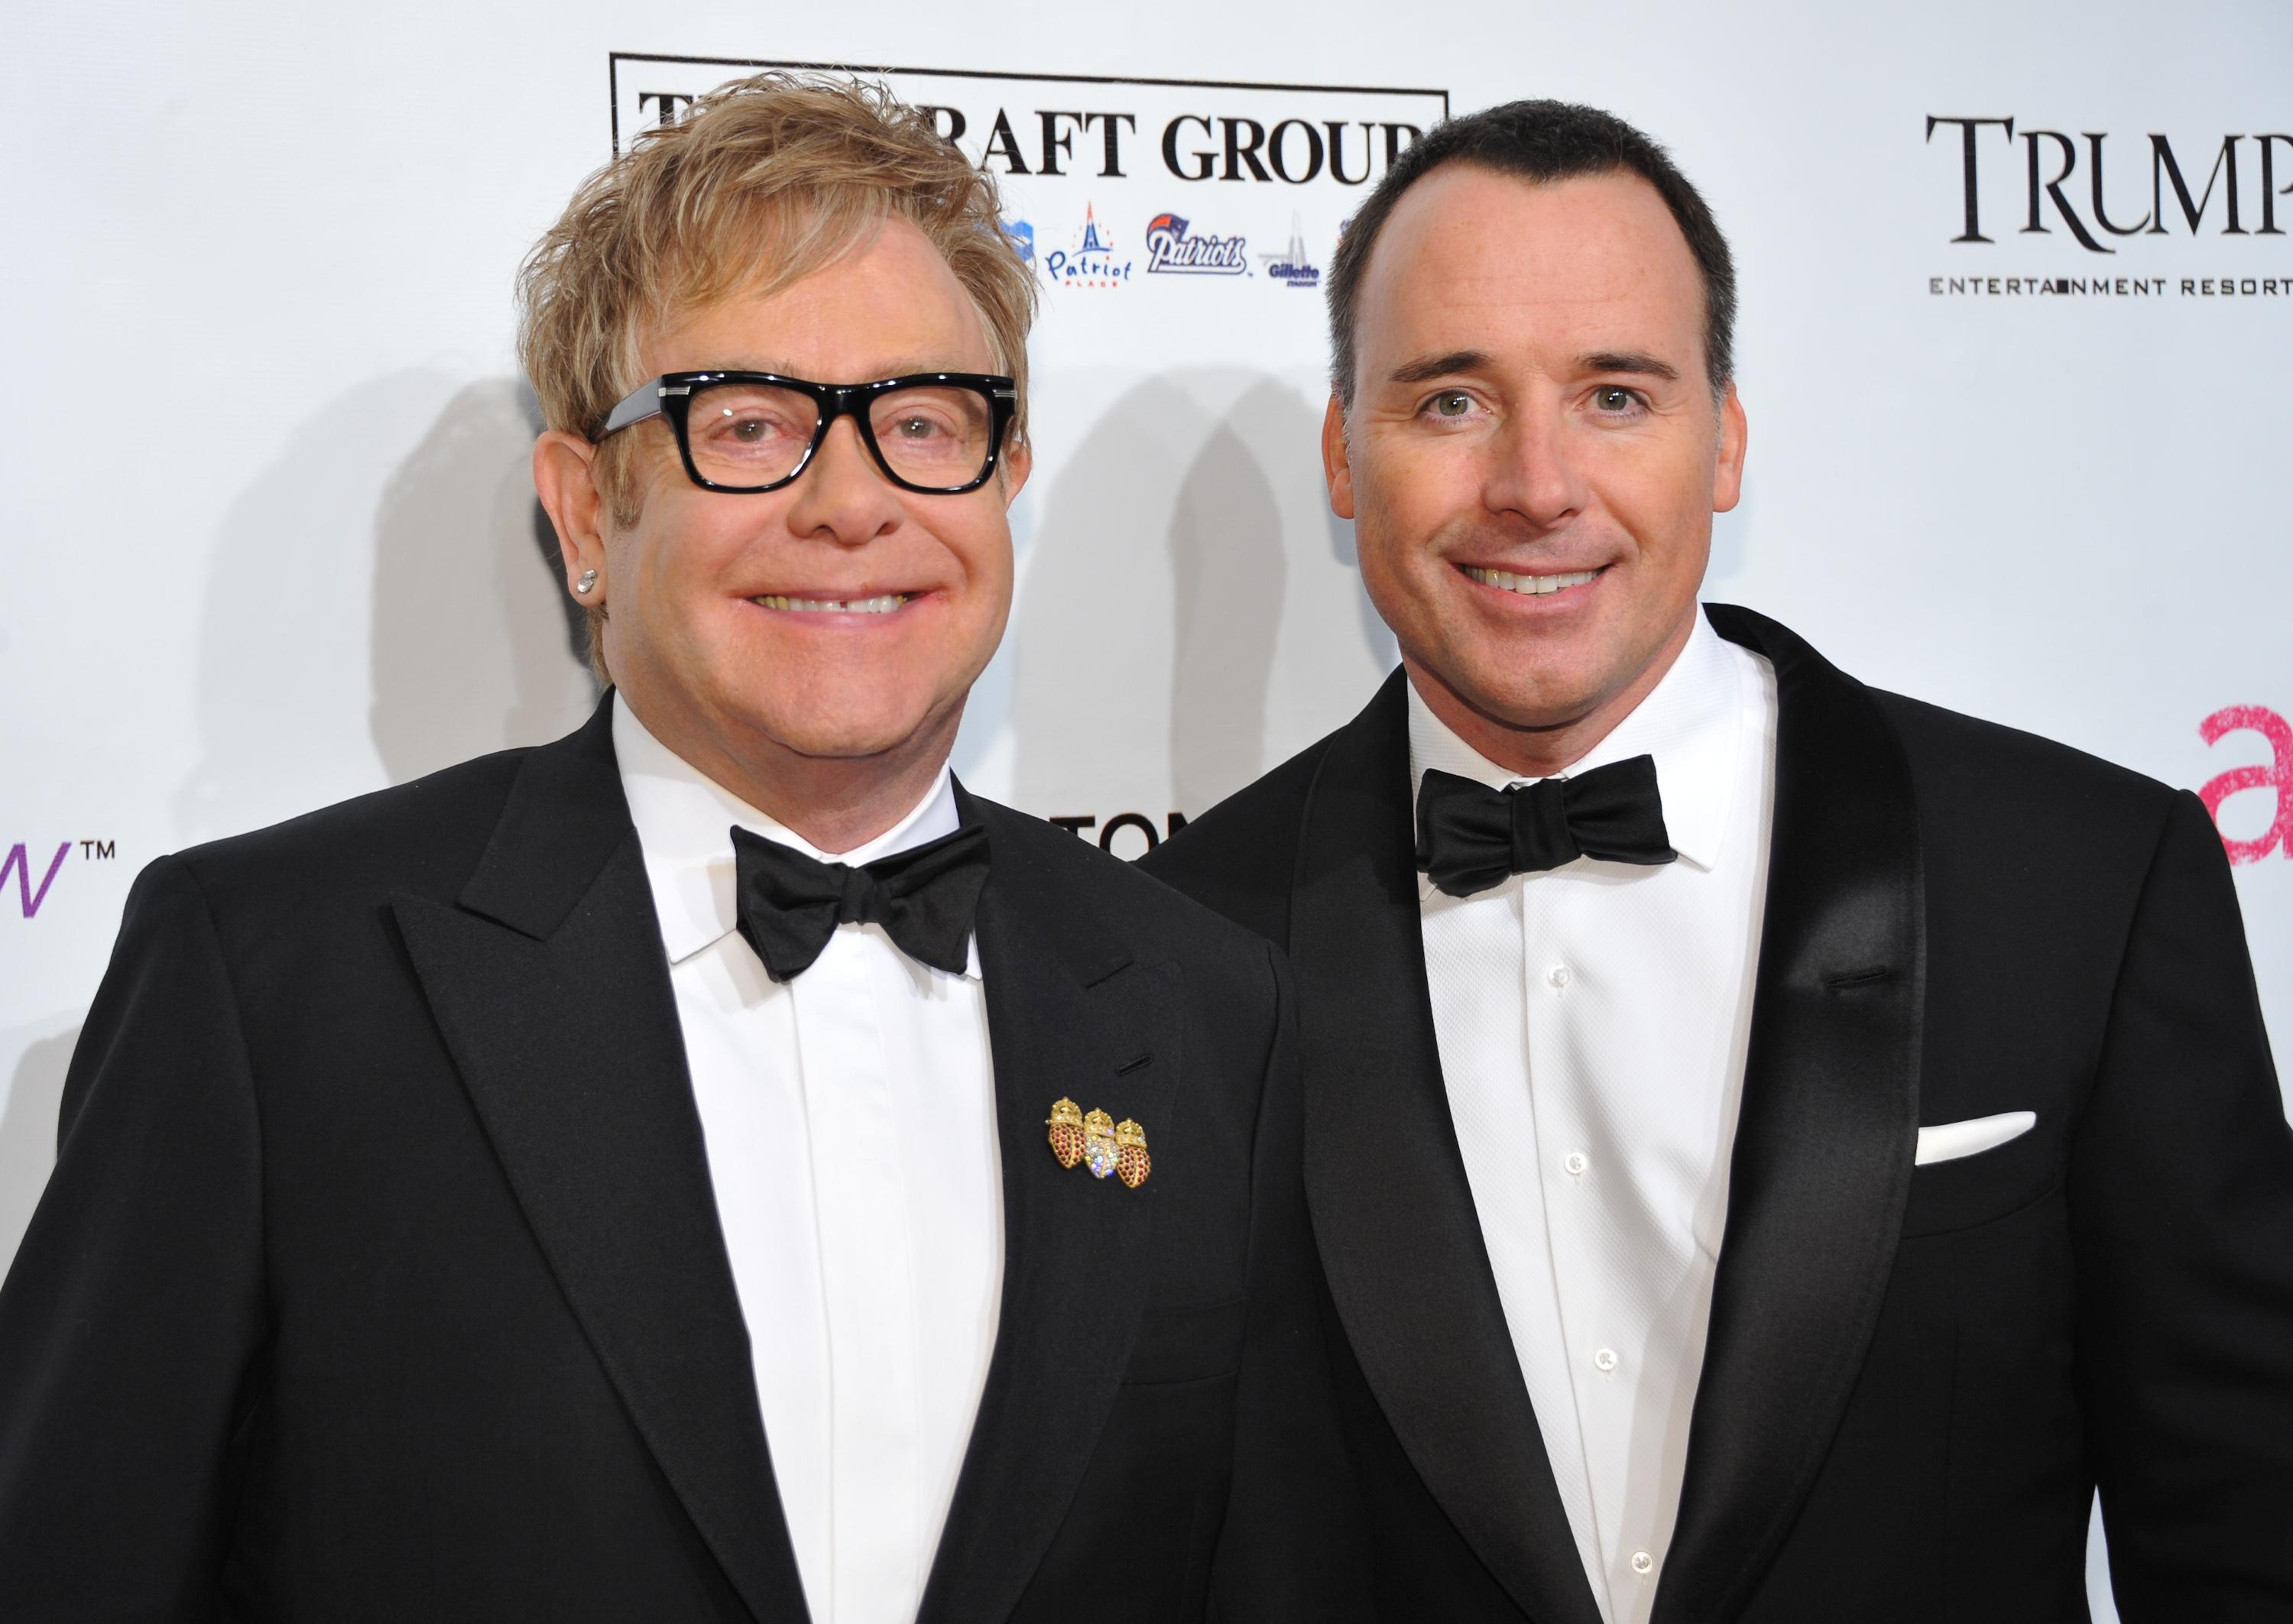 elton john and david furnish relationship trust